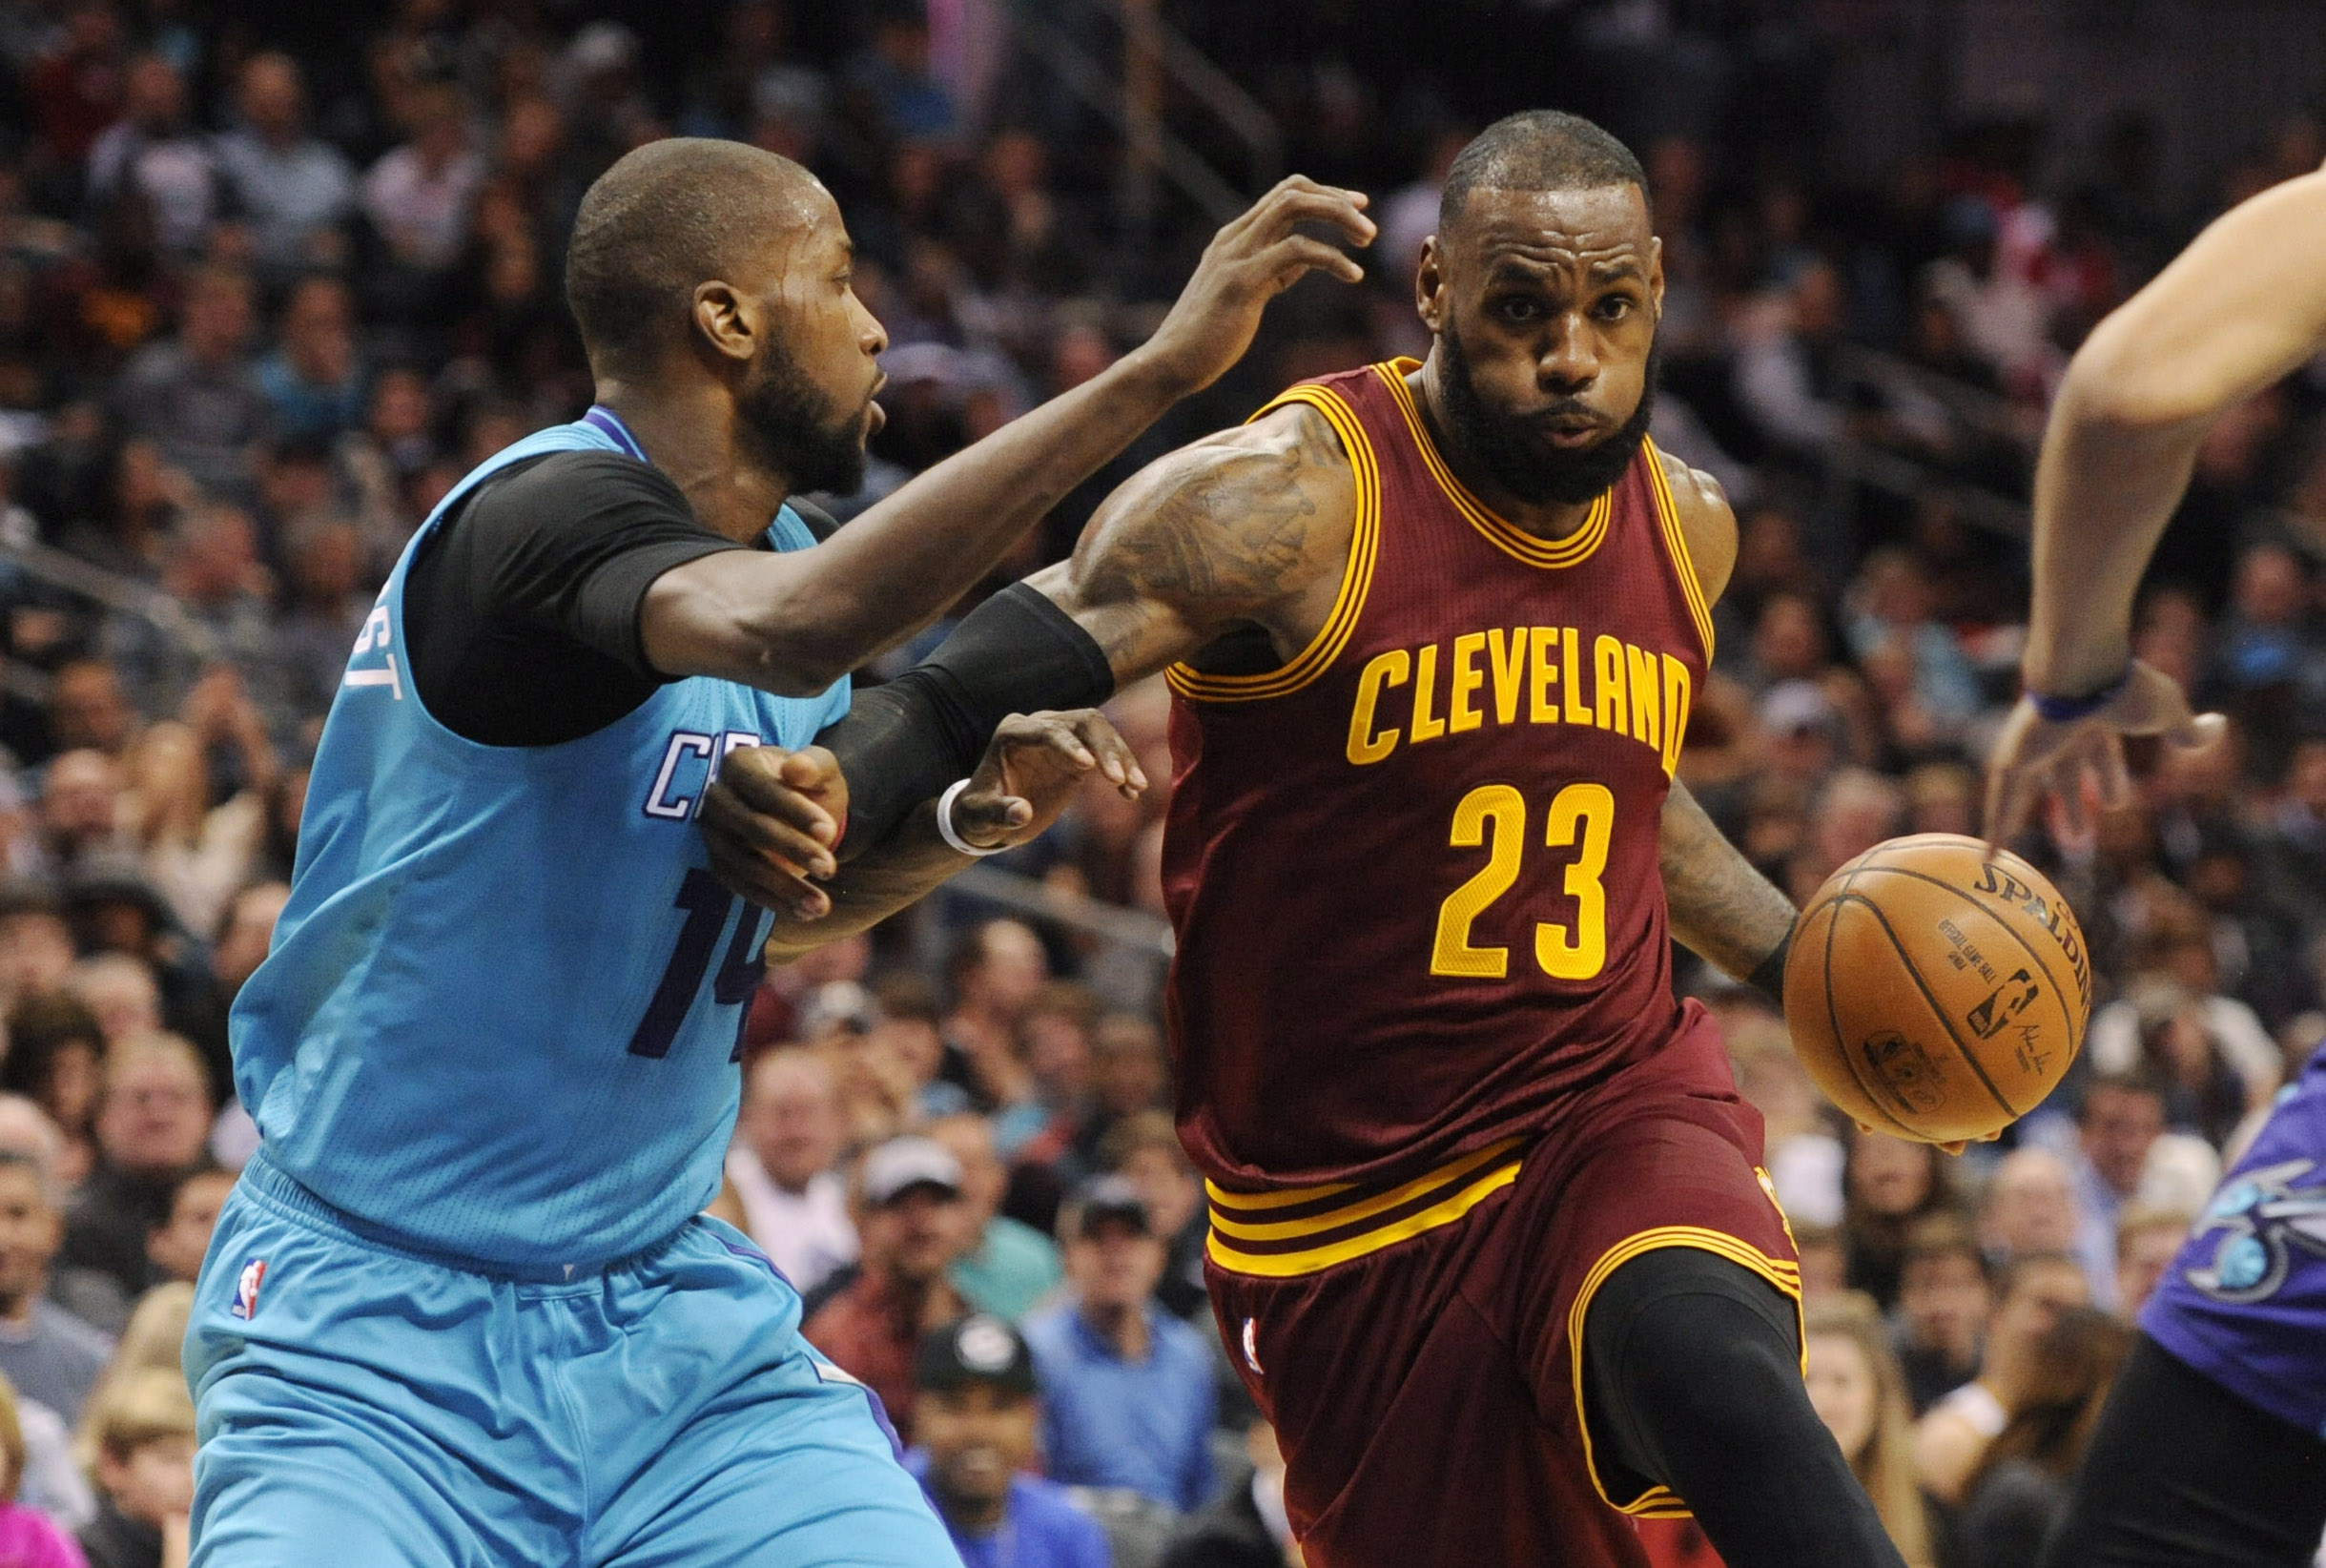 9780134-nba-cleveland-cavaliers-at-charlotte-hornets